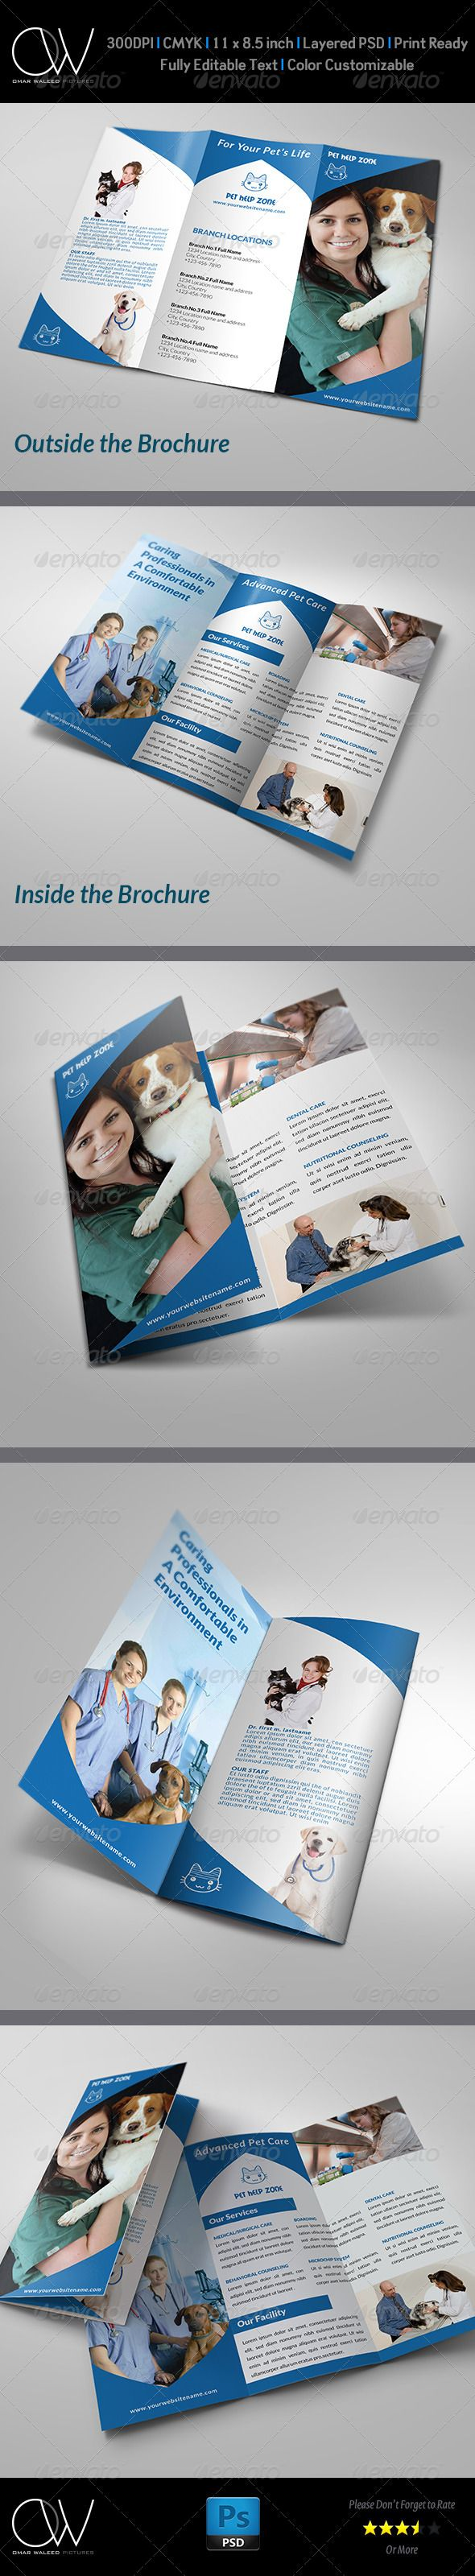 clinic brochure template - 29 best trifold animal brochures images on pinterest